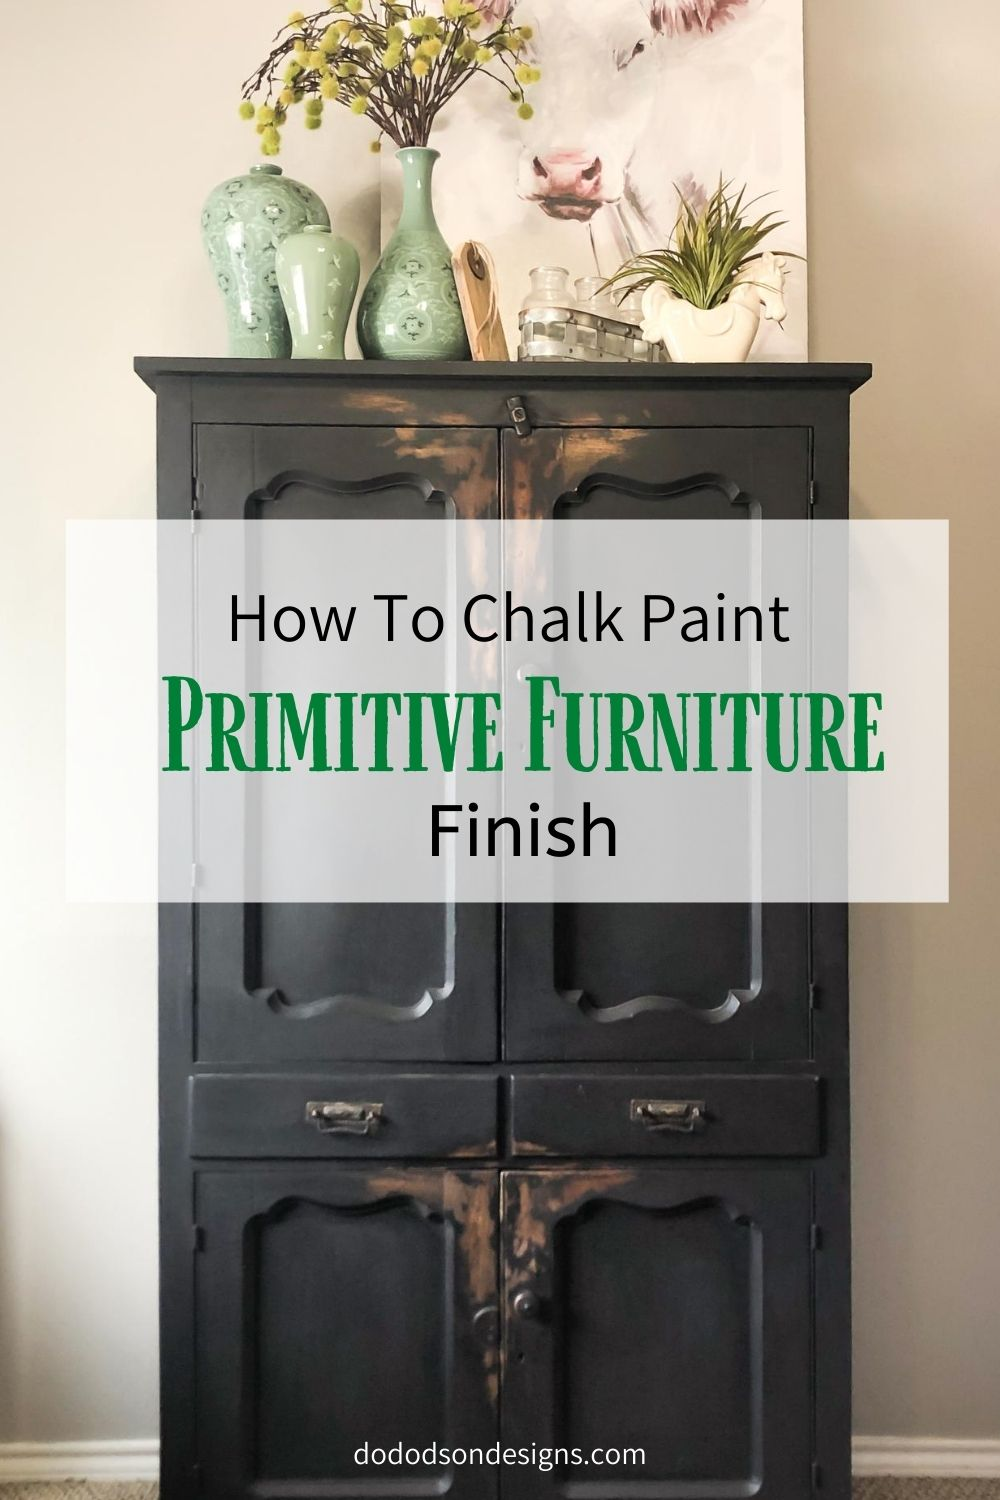 How To Chalk Paint A Primitive Furniture Finish